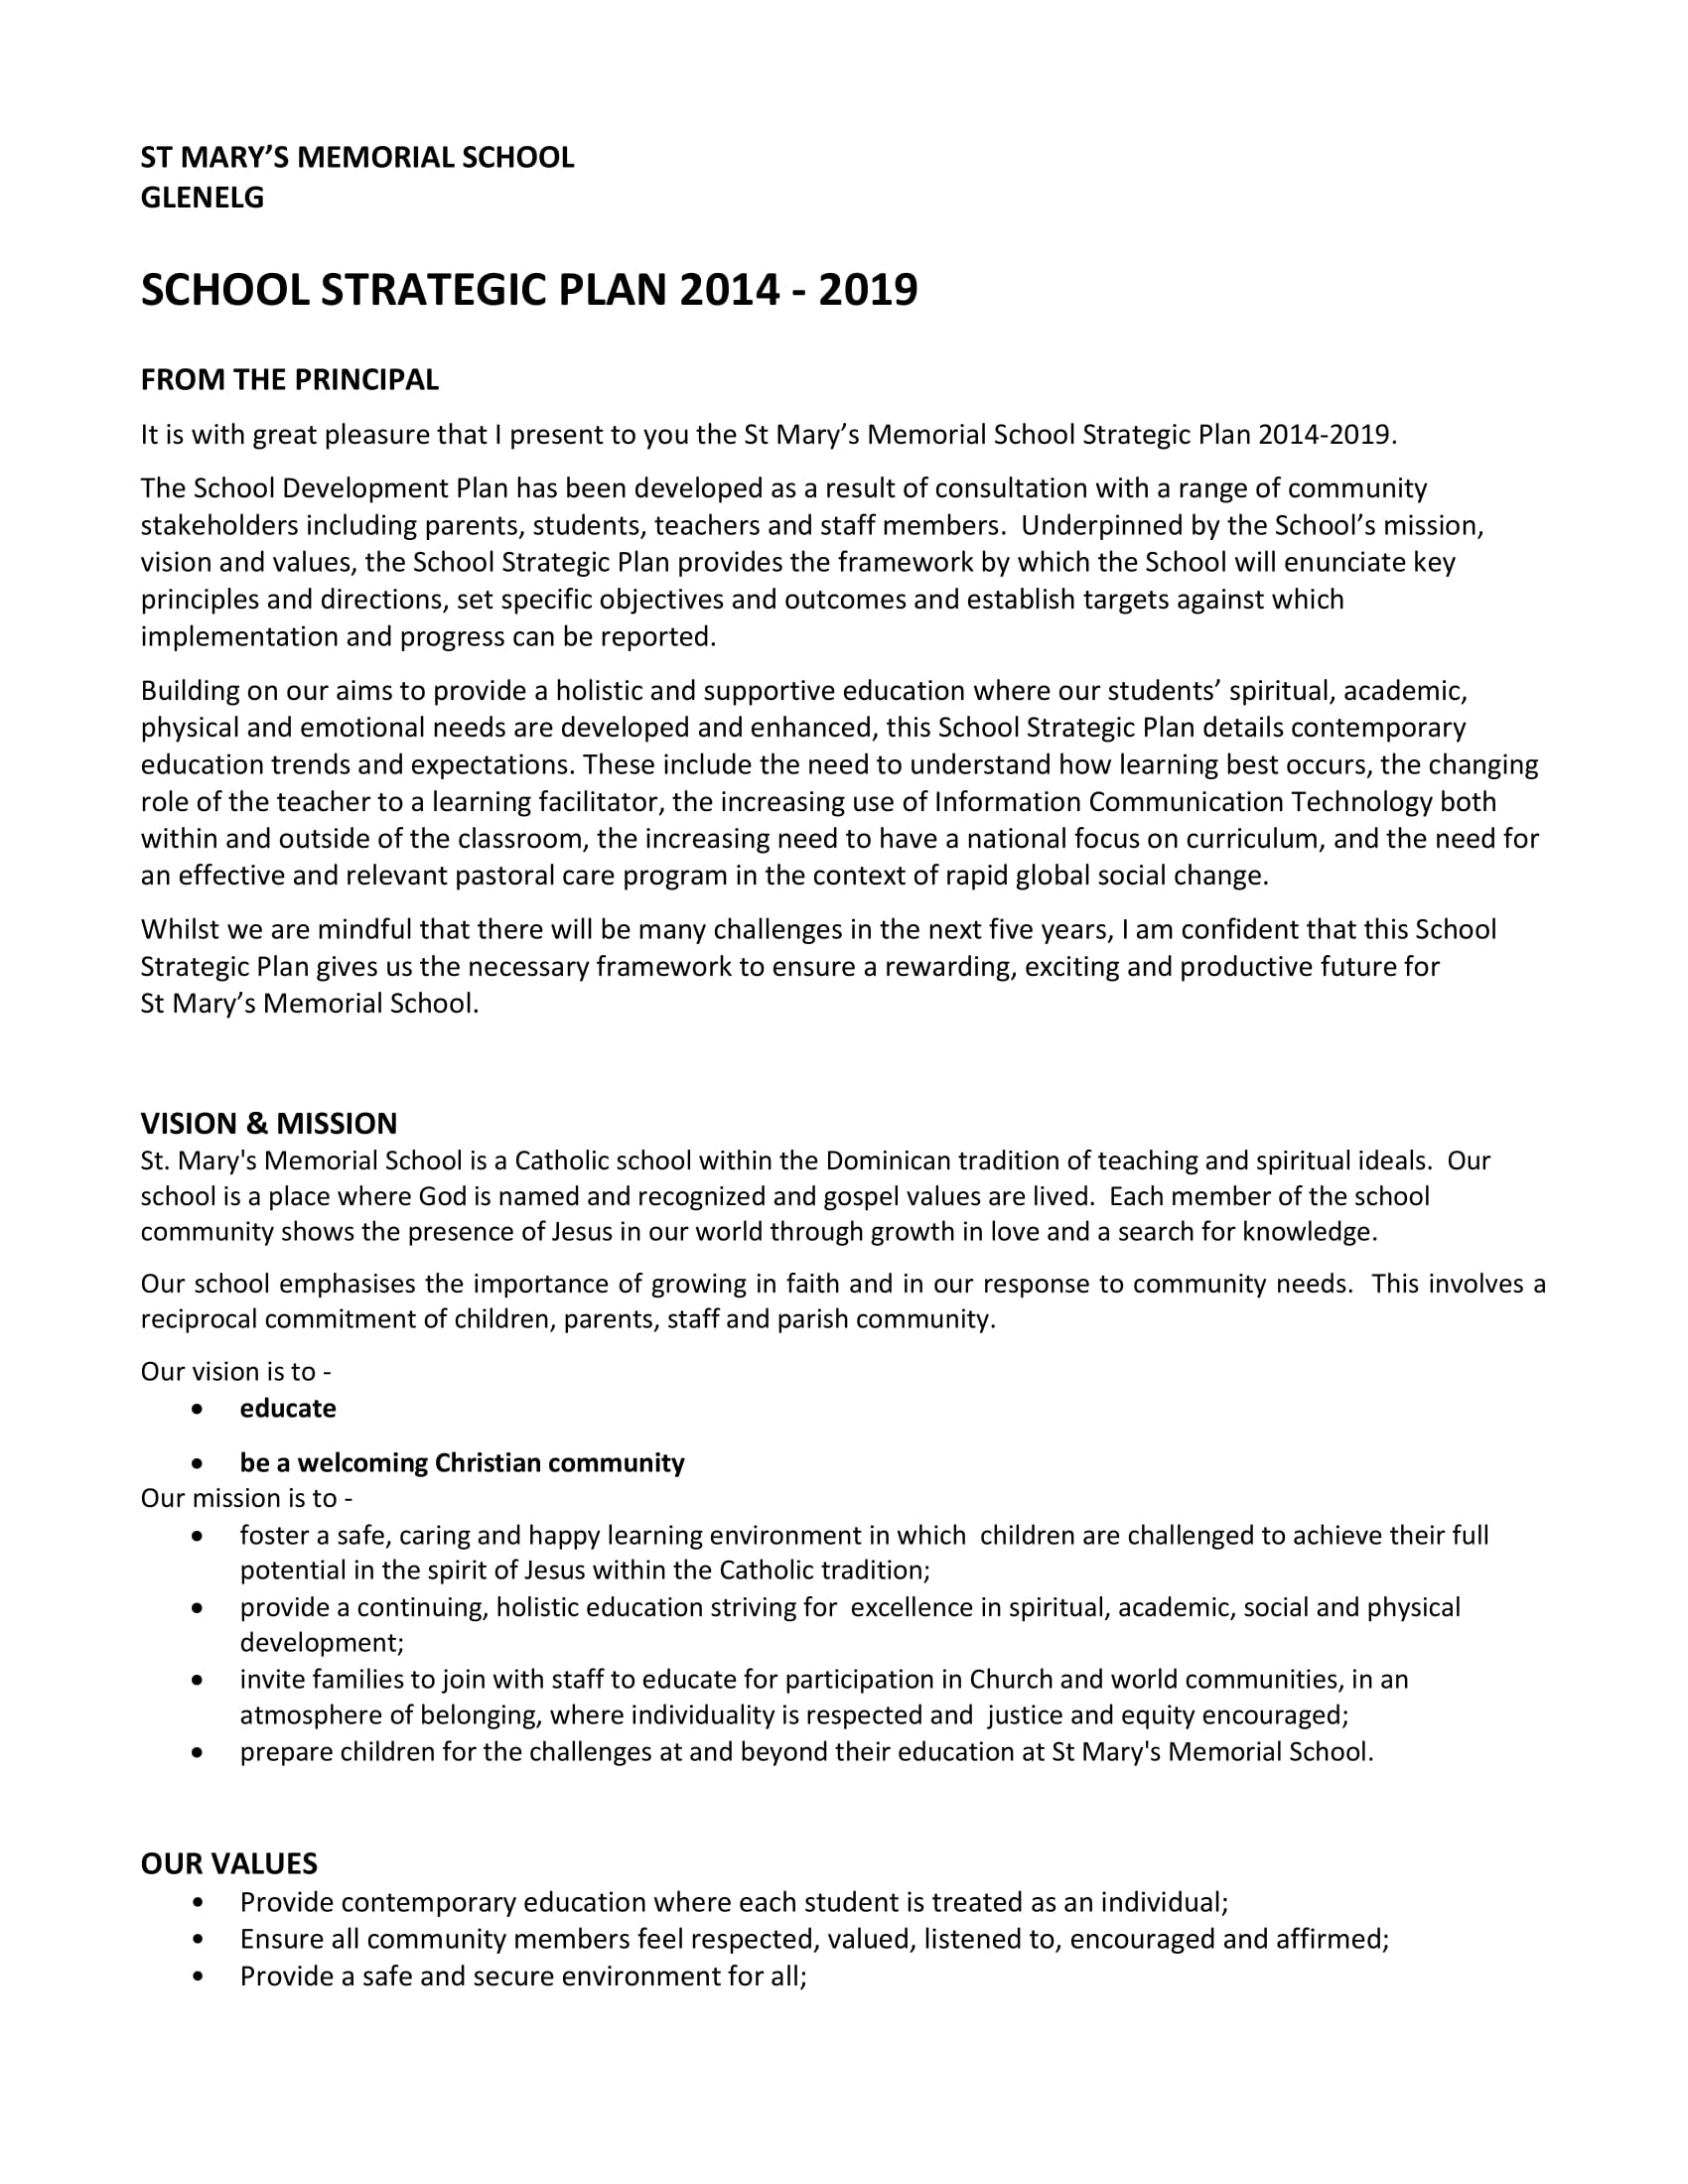 simple school strategic plan example 1